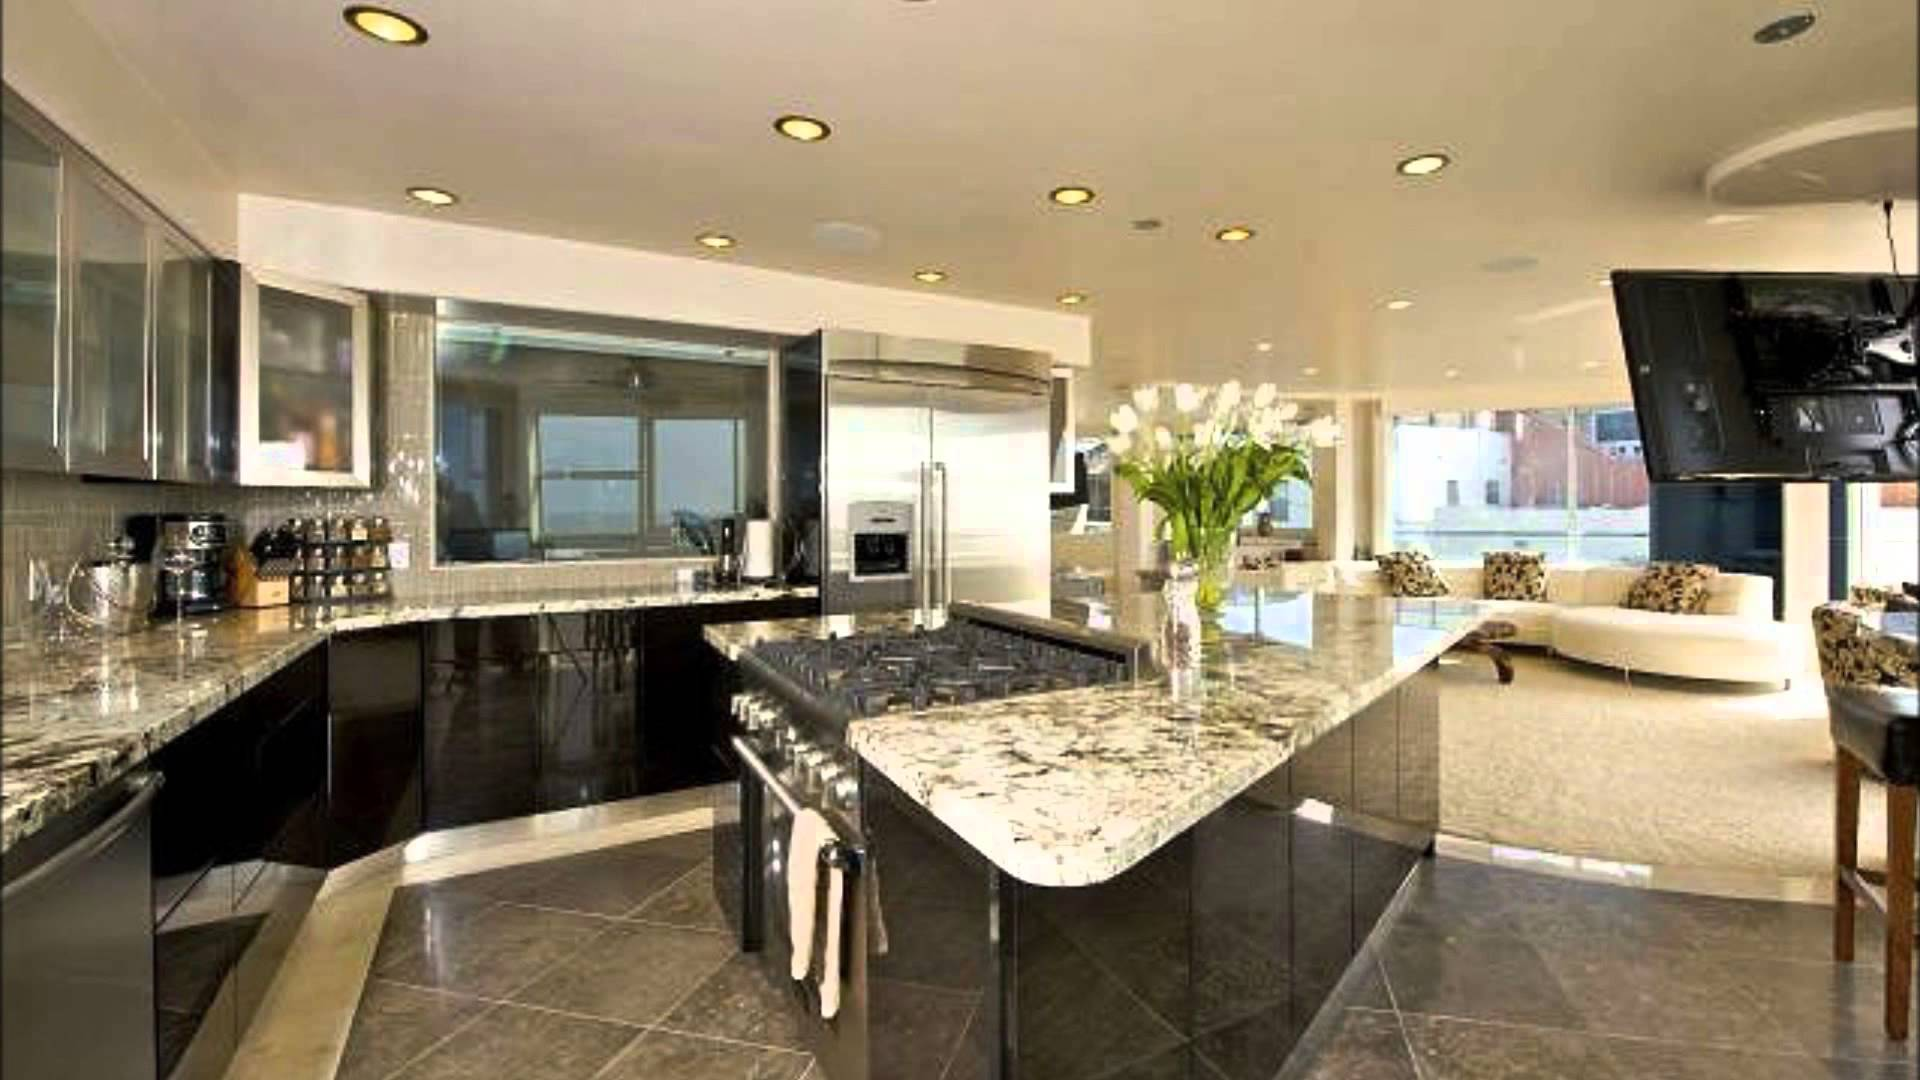 Design your own kitchen ideas with images - Kitchen design expo ...